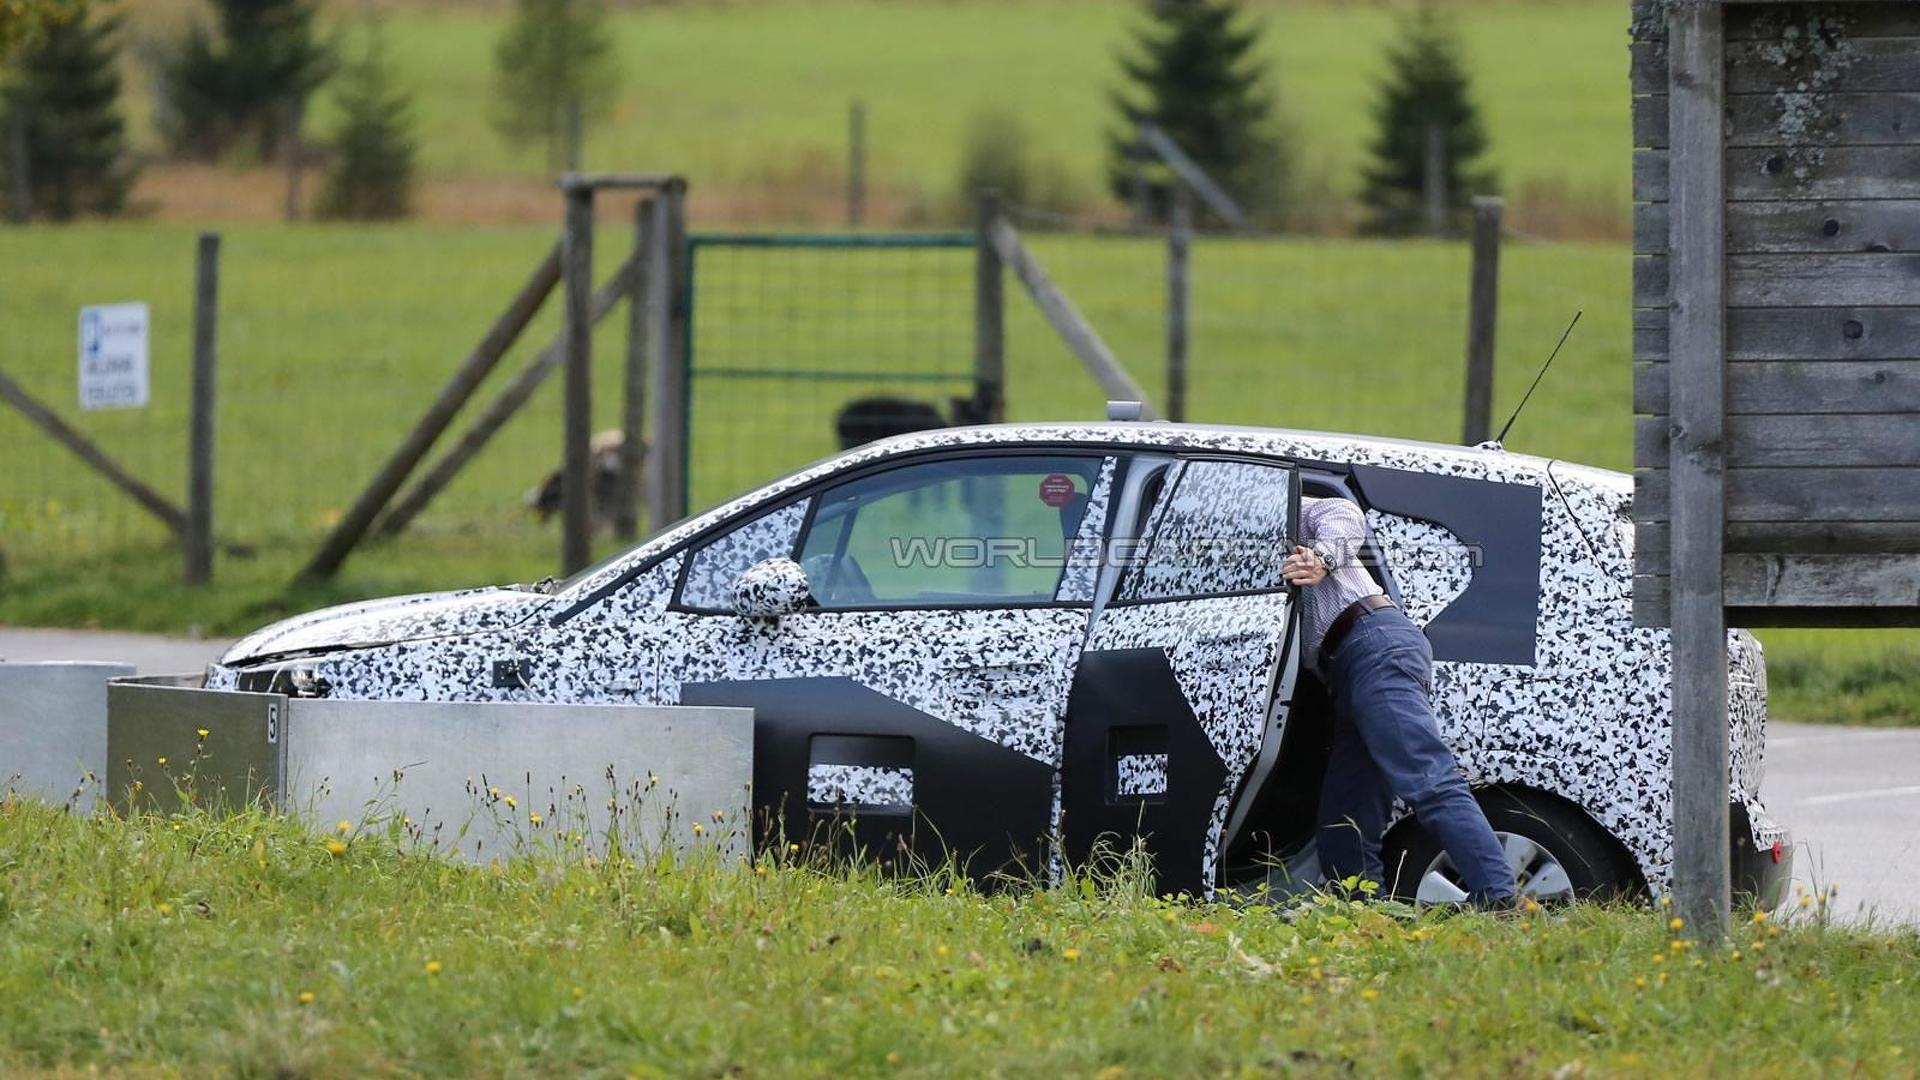 2017 Opel Meriva spied up close with the conventional rear door open (40 pics)